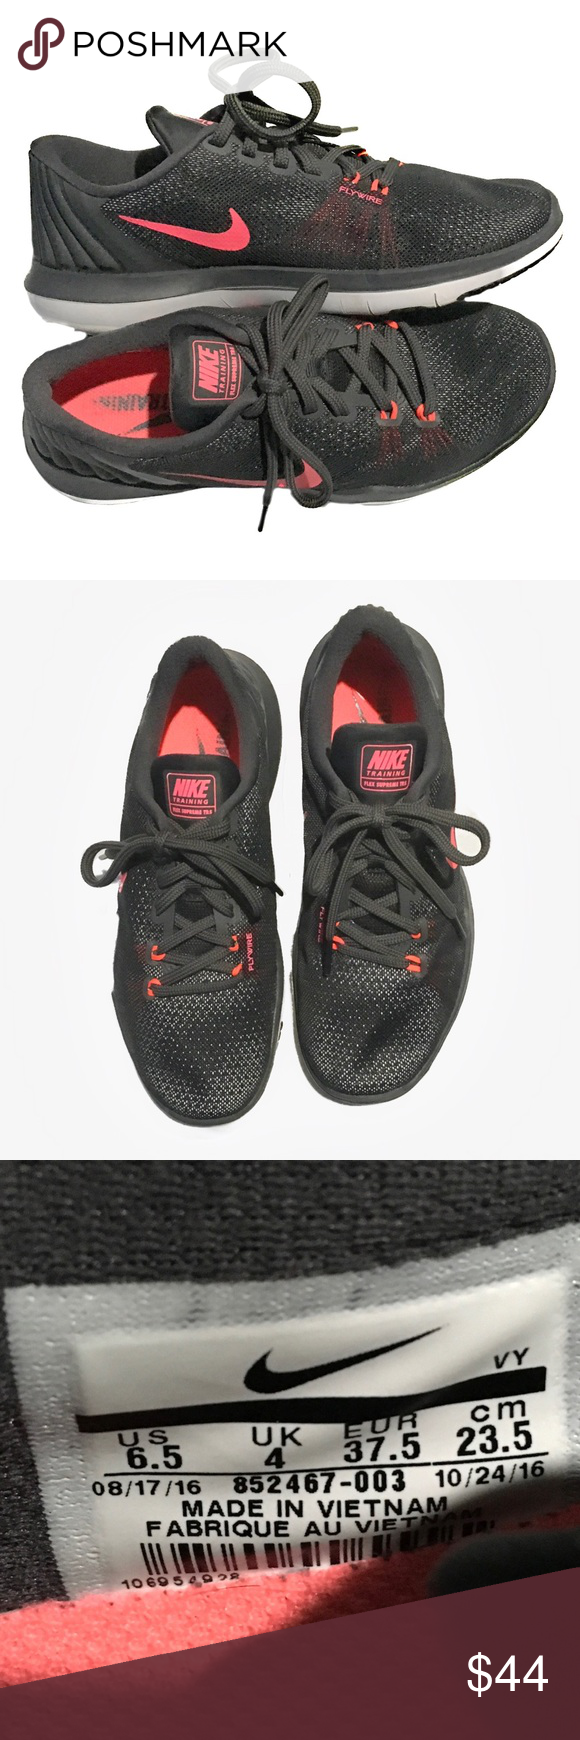 58374a5d5cf8 Nike Training Flex Supreme TR5 Running Shoes 6.5 Designed to meet all of  your training demands